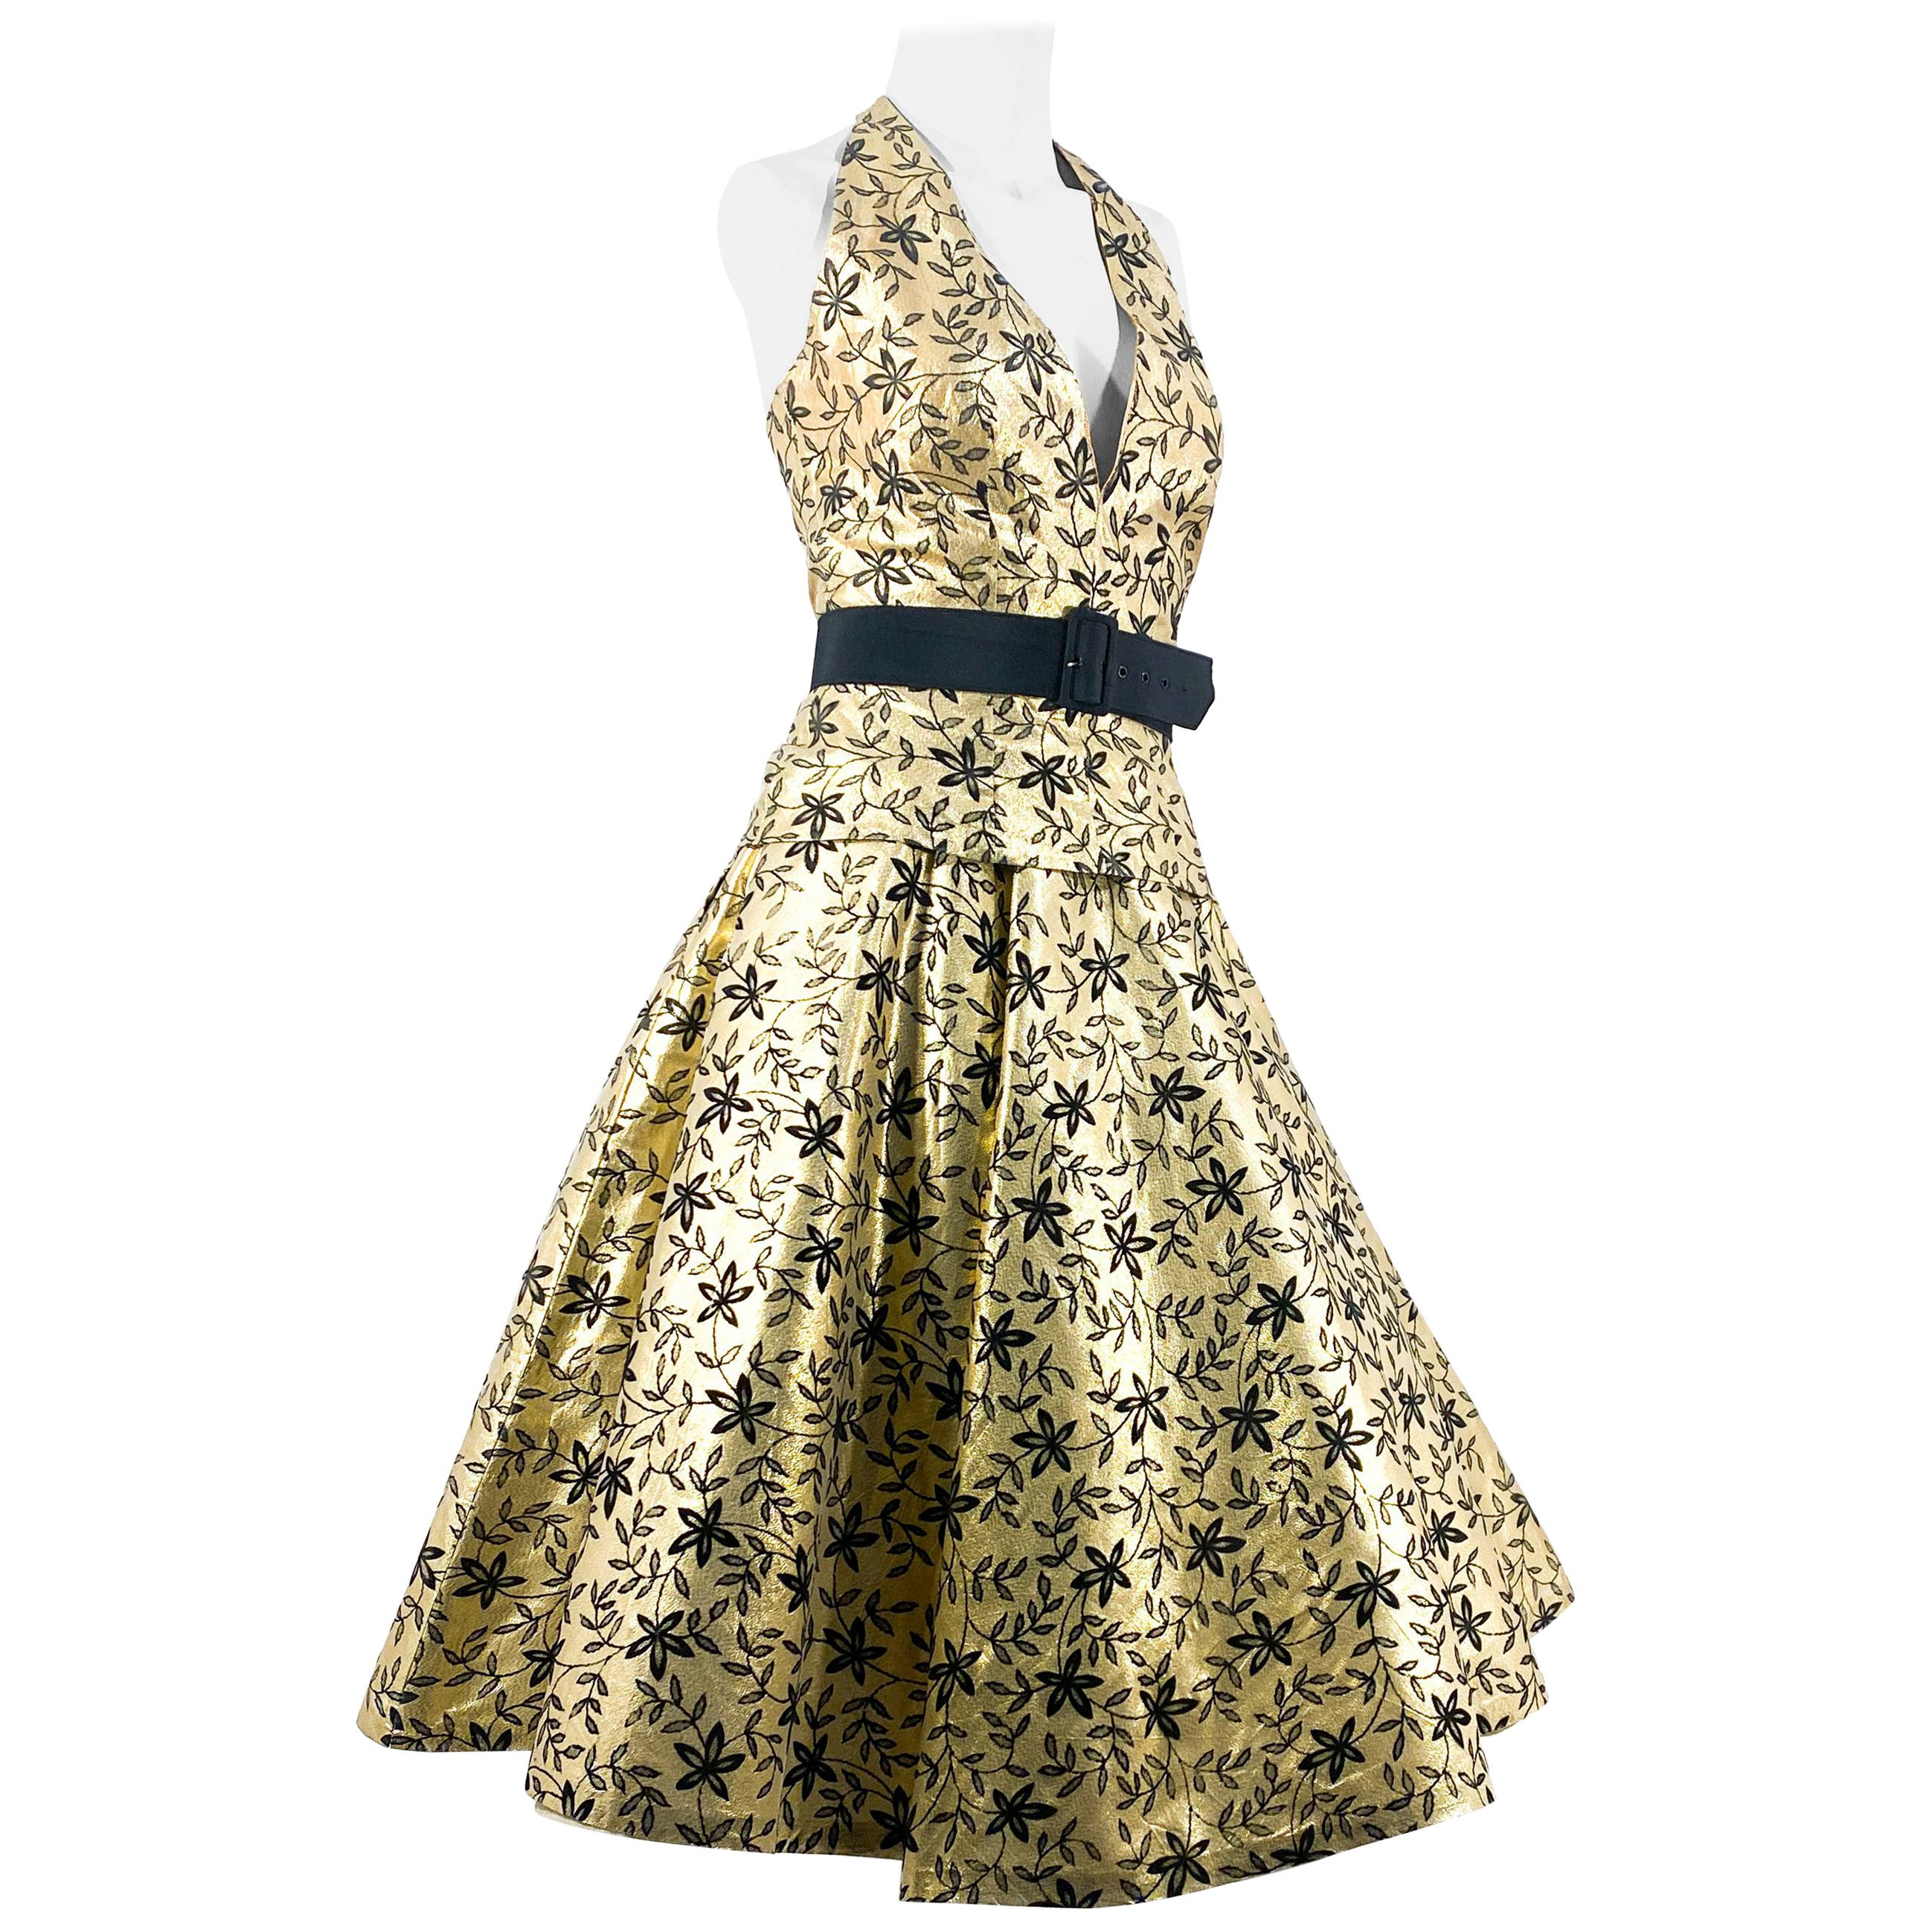 1950s Gold Lamé and Black Two-Piece Cocktail Dress